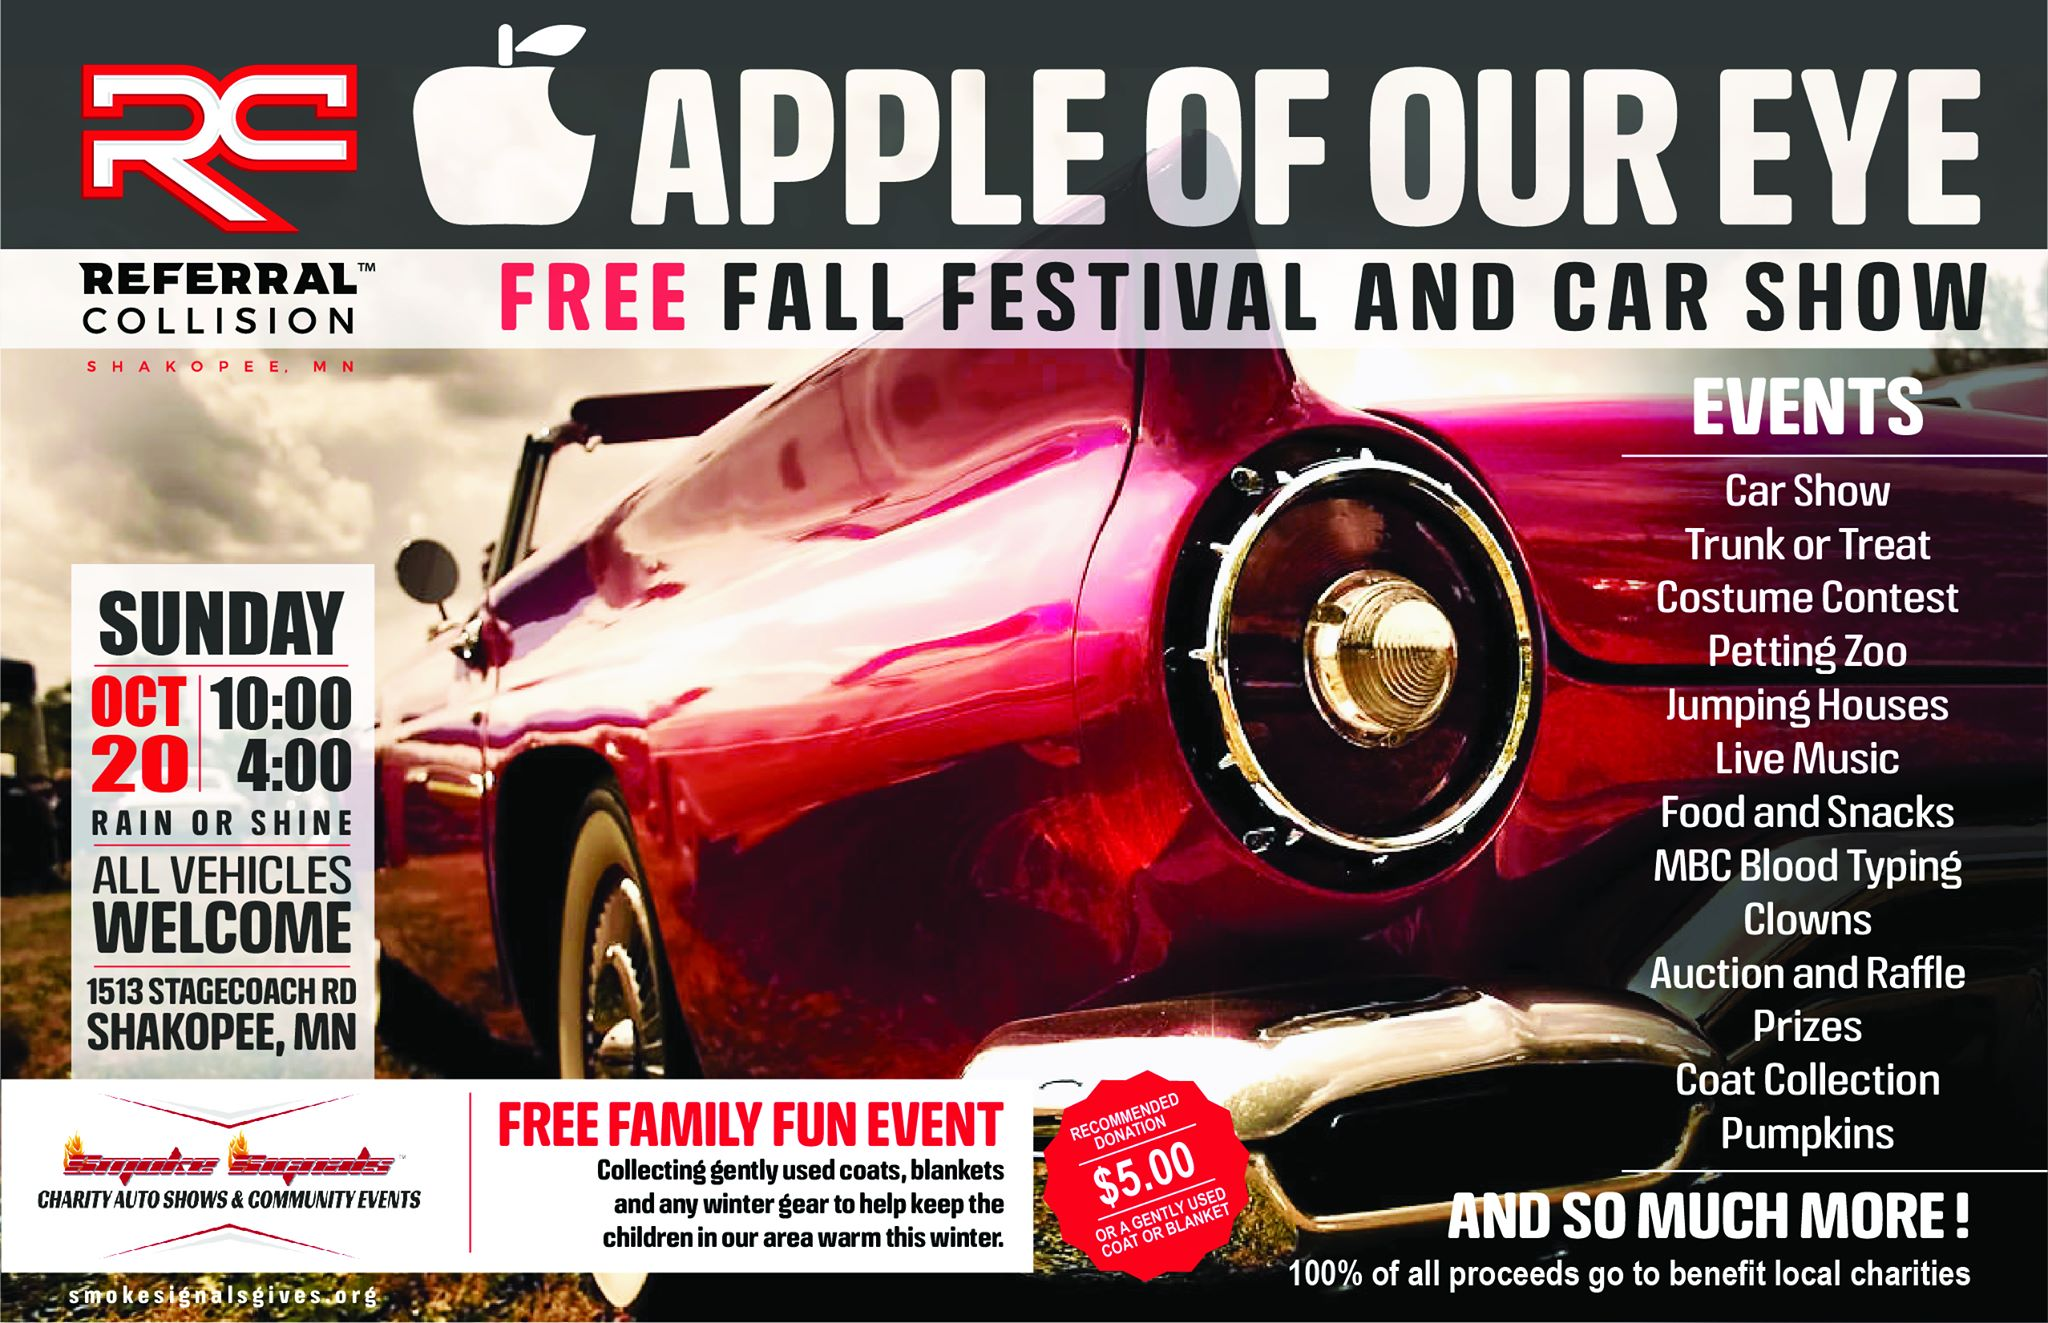 Apple of Our Eye Fall Festival and Car Show